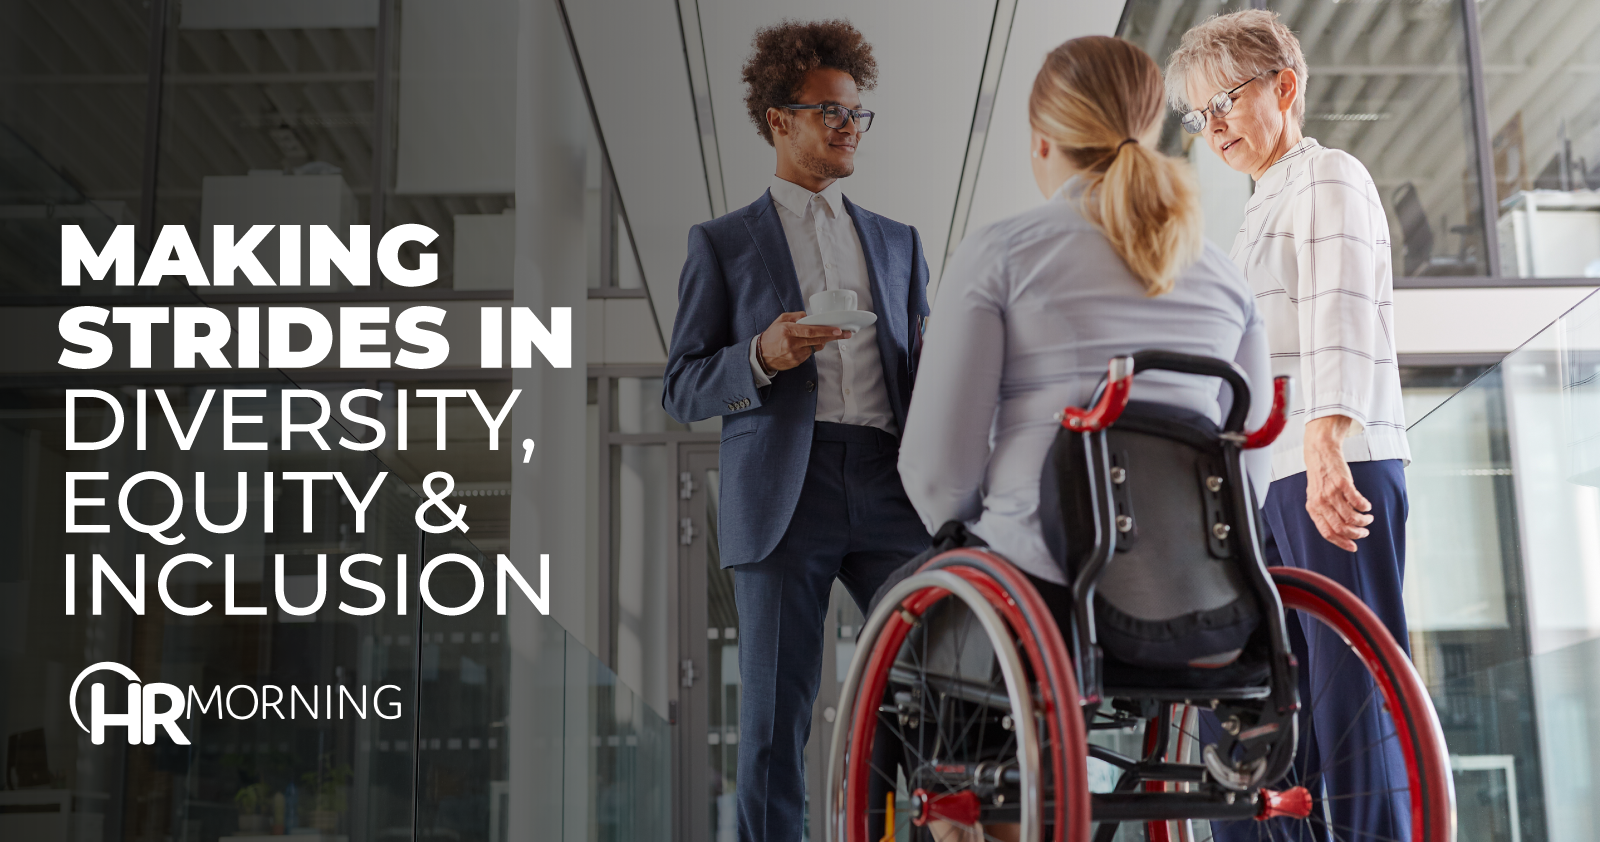 Making Strides In Diversity Equity & Inclusion